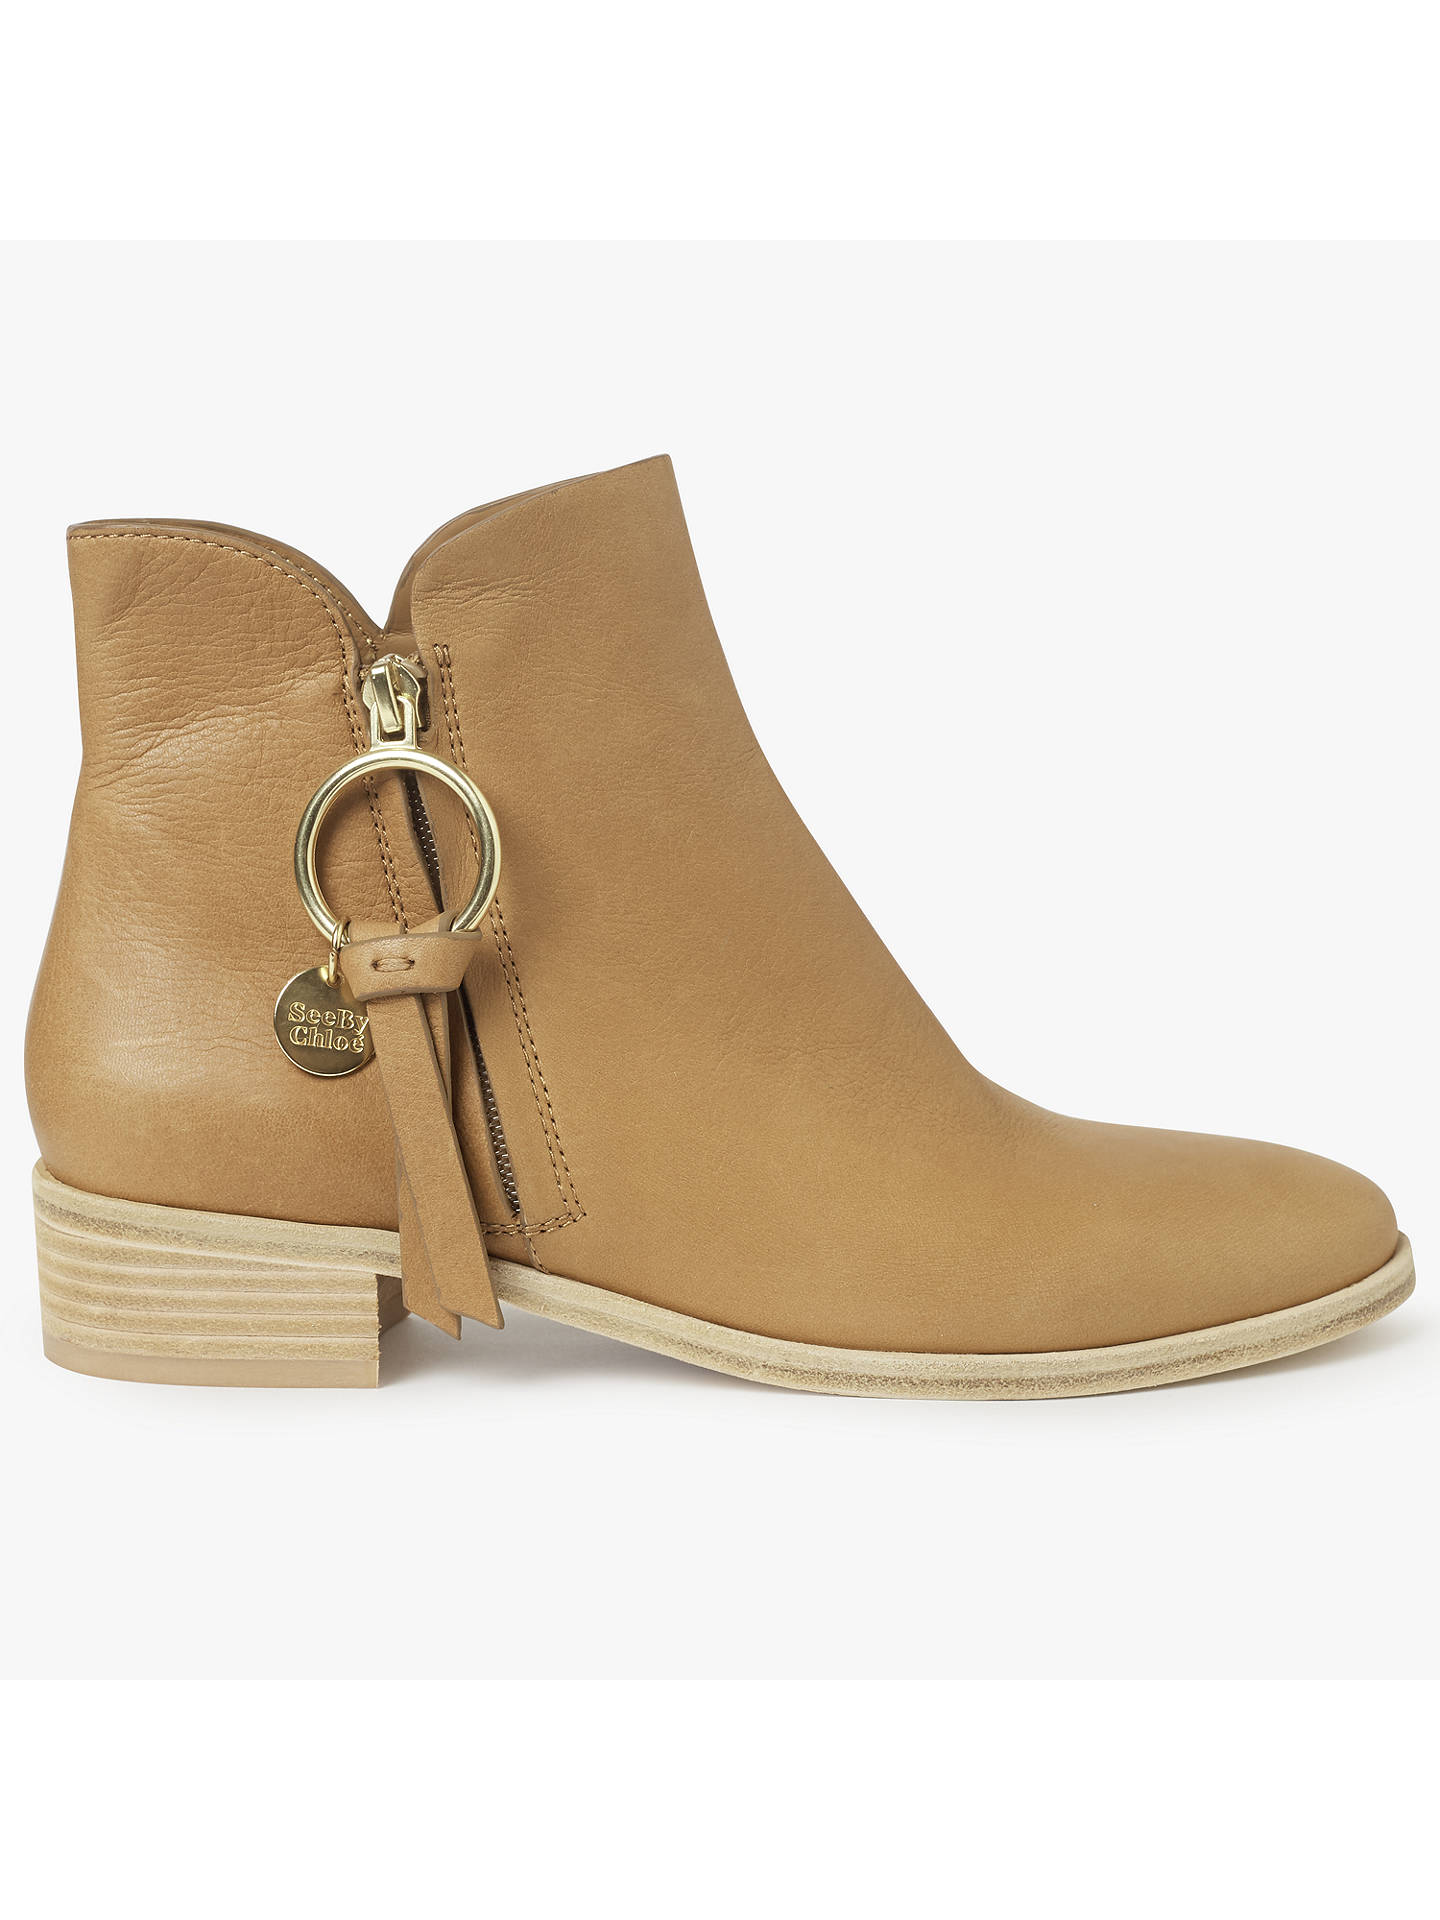 acfceeb985cc1 Buy See by Chloé Louise Ankle Boots